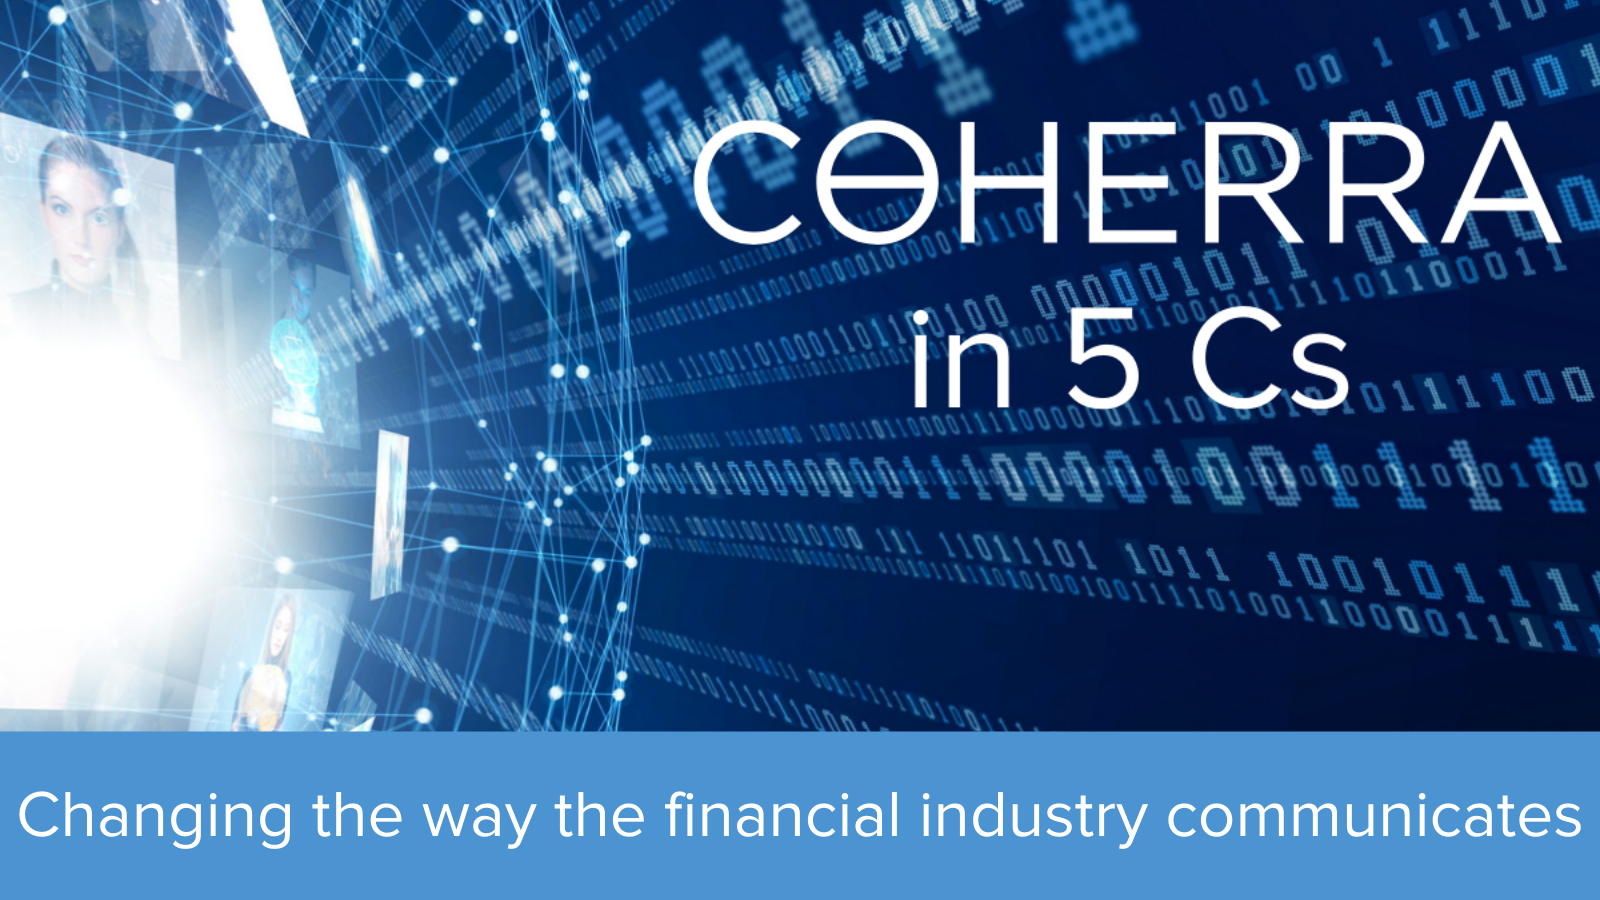 Changing the way the financial industry communicates.